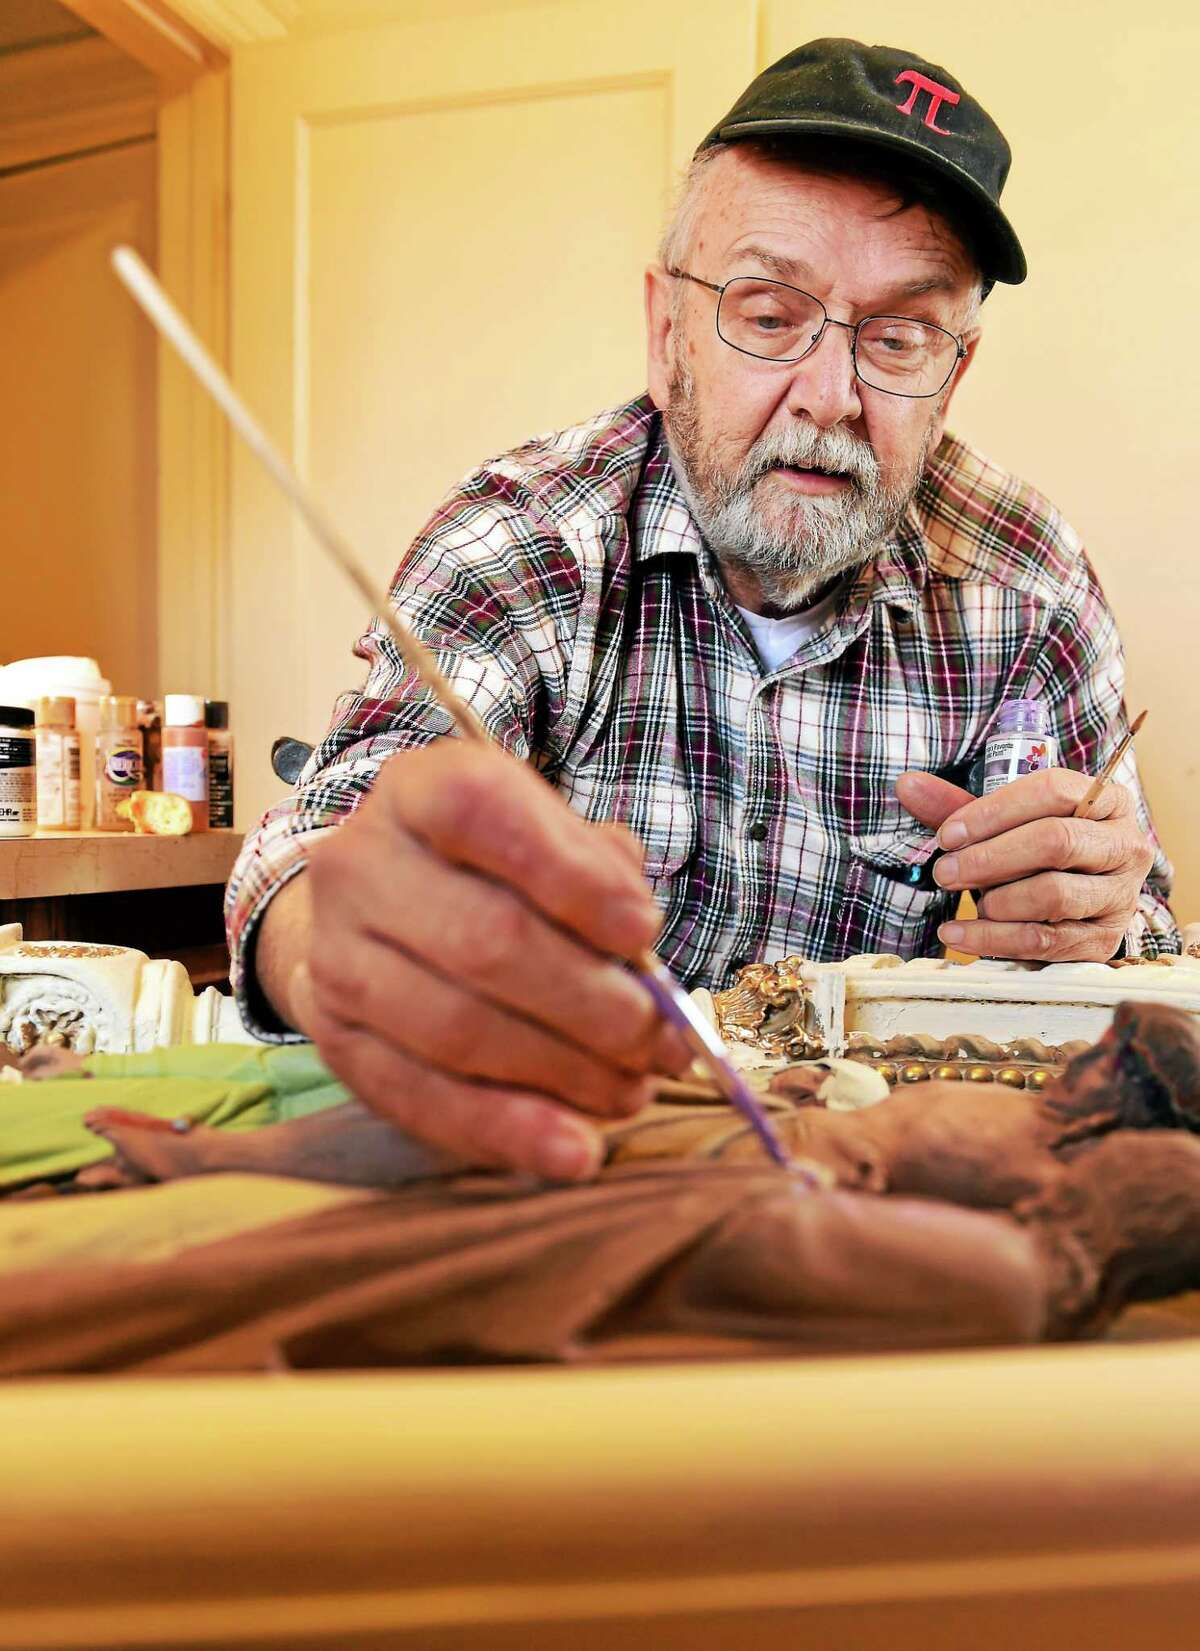 Edwin Norse, owner of Saint Joseph's Statue Repair of Middletown, 68, demonstrates his patient brush strokes on a restoration of a Station of the Cross at the St. Ann Roman Catholic Church on Dixwell Ave. in Hamden.